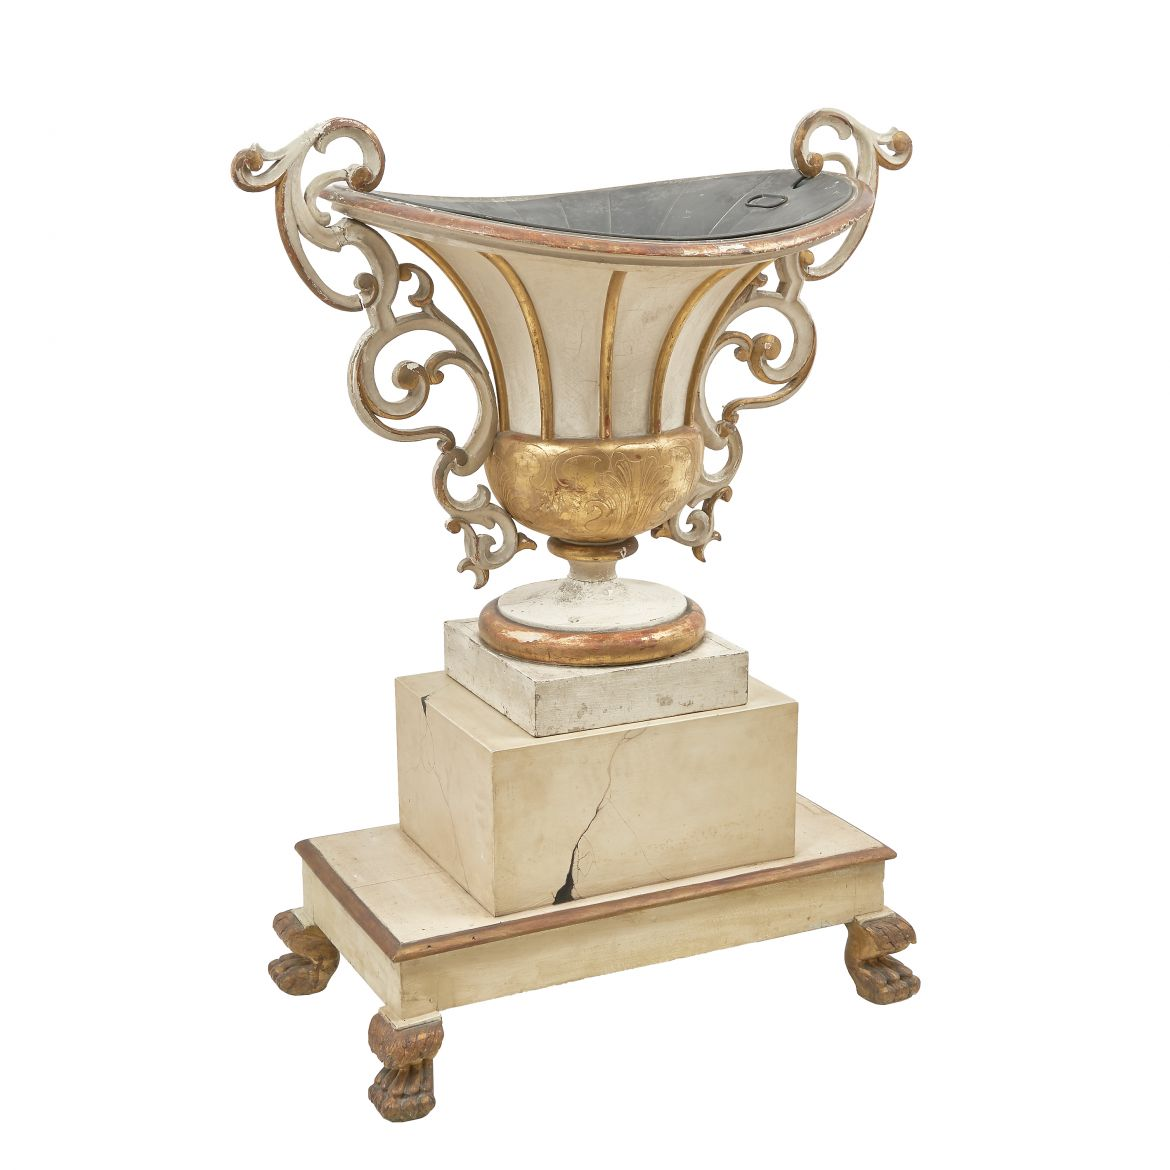 Italian Parcel Gilt Campana shaped Urn